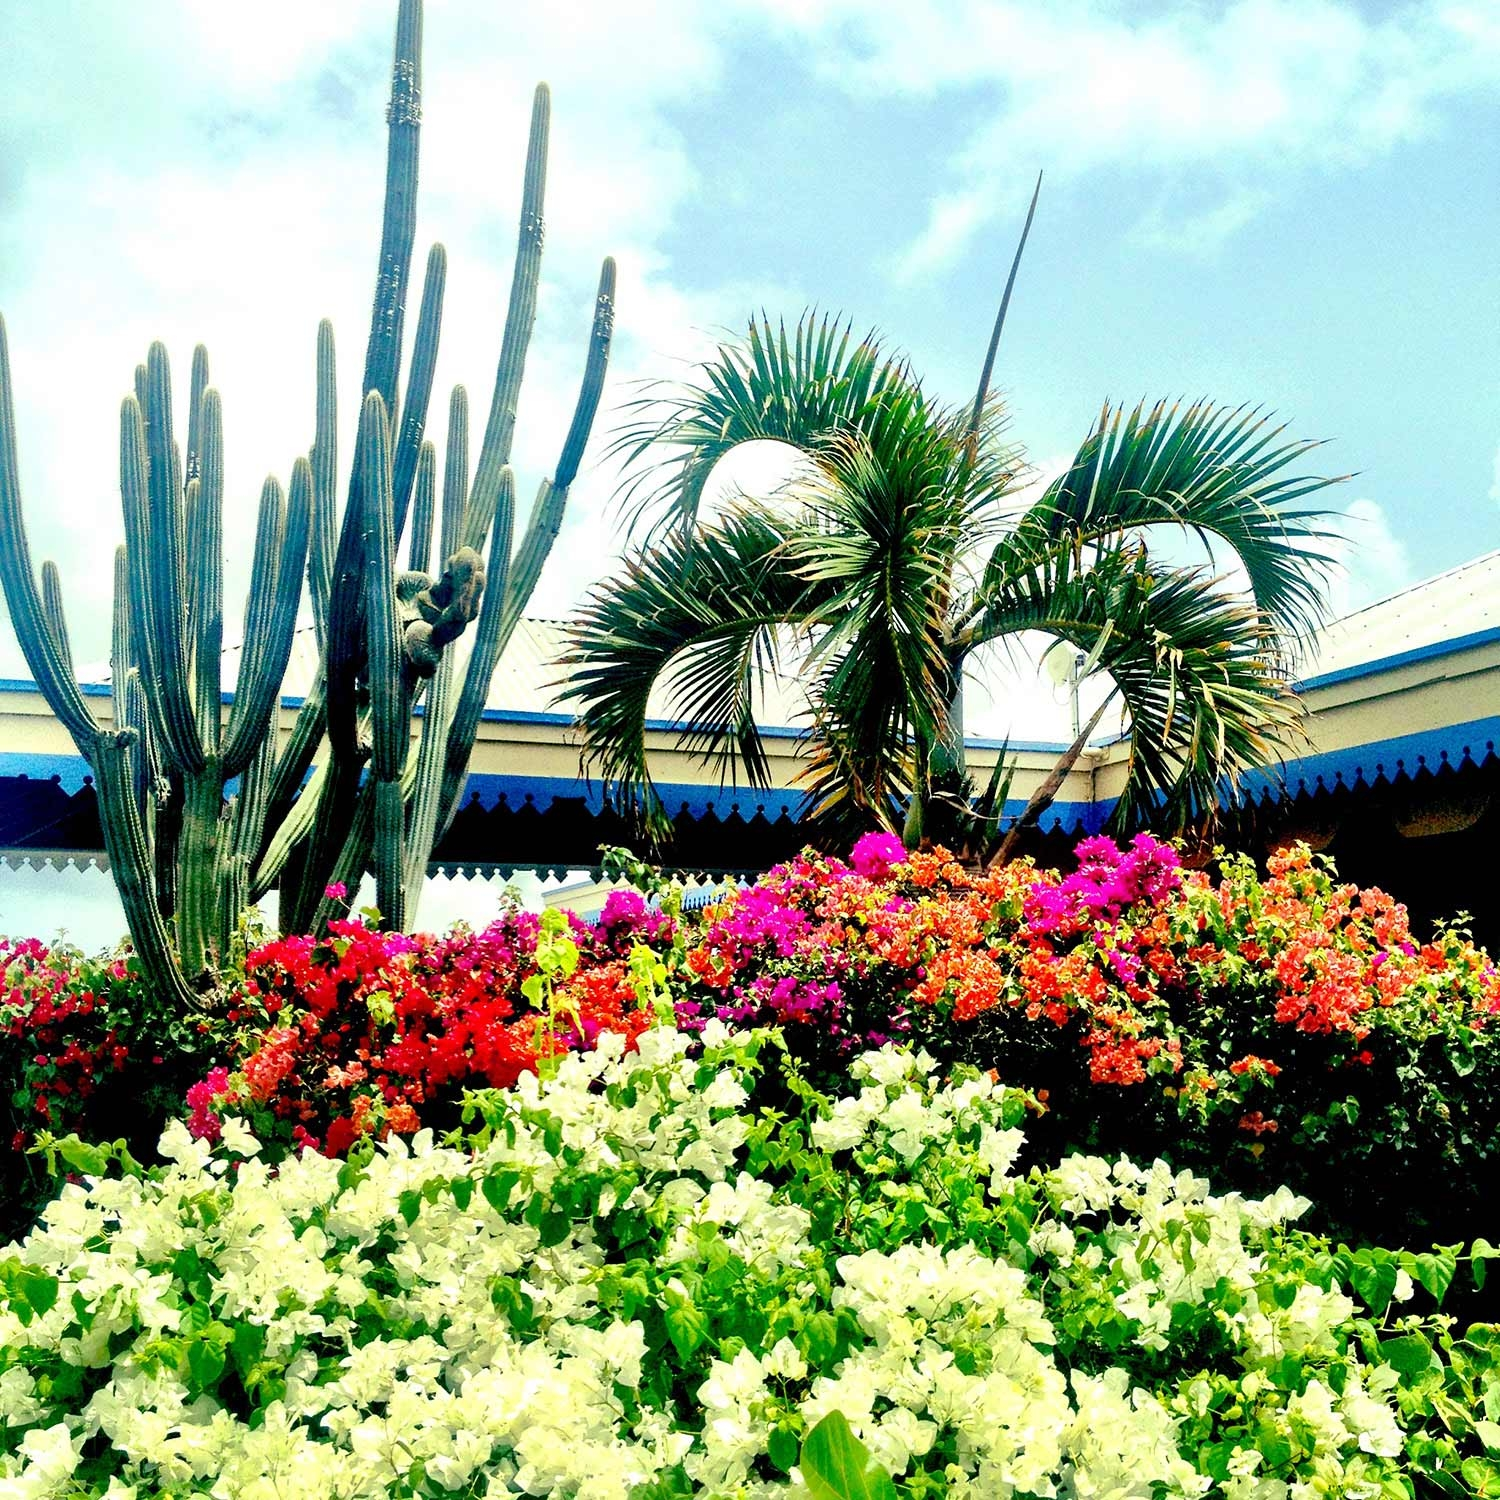 Bright flower bushes, large cactus and tall palm trees